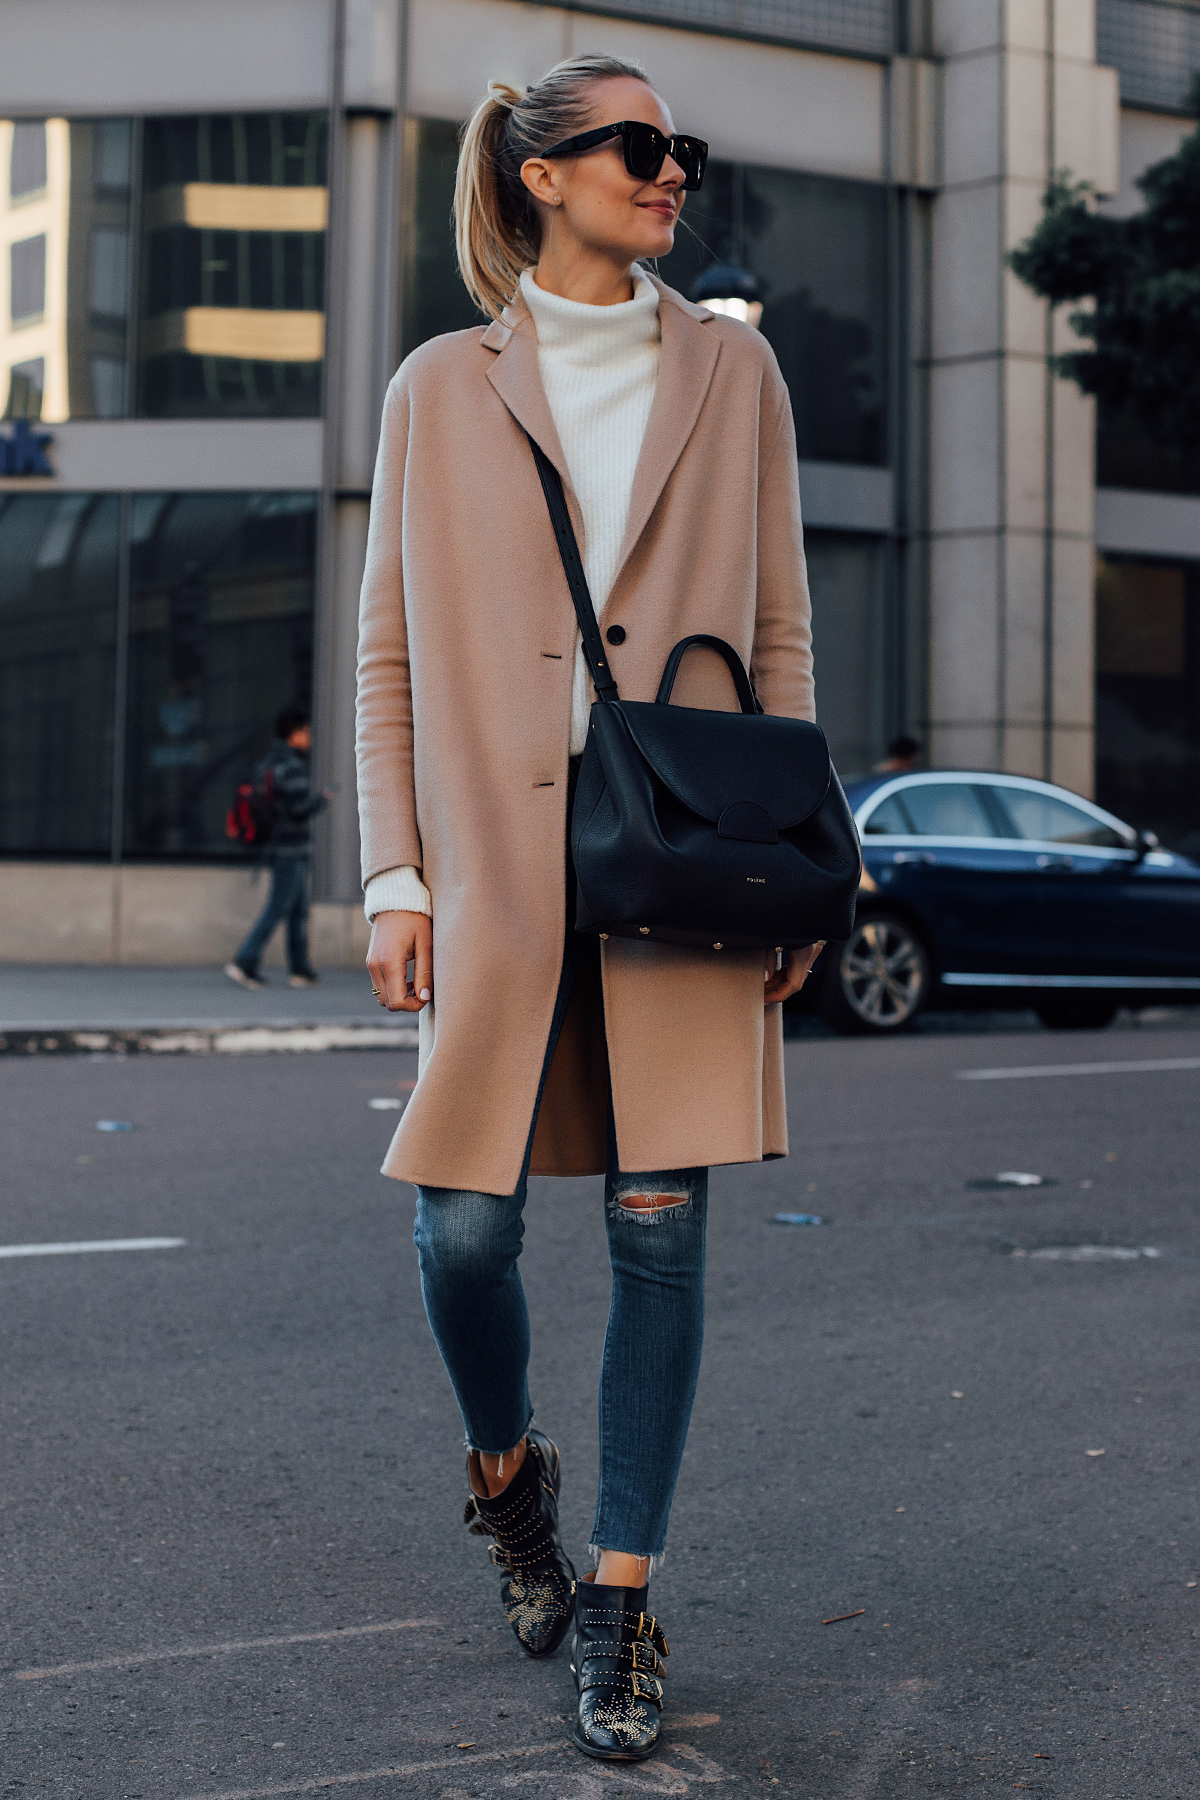 Blonde Woman Wearing AllSaints Camel Coat White Sweater Hudson Ripped Skinny Jeans Chloe Susanna Black Booties Polene Black Handbag Fashion Jackson San Diego Fashion Blogger Street Style